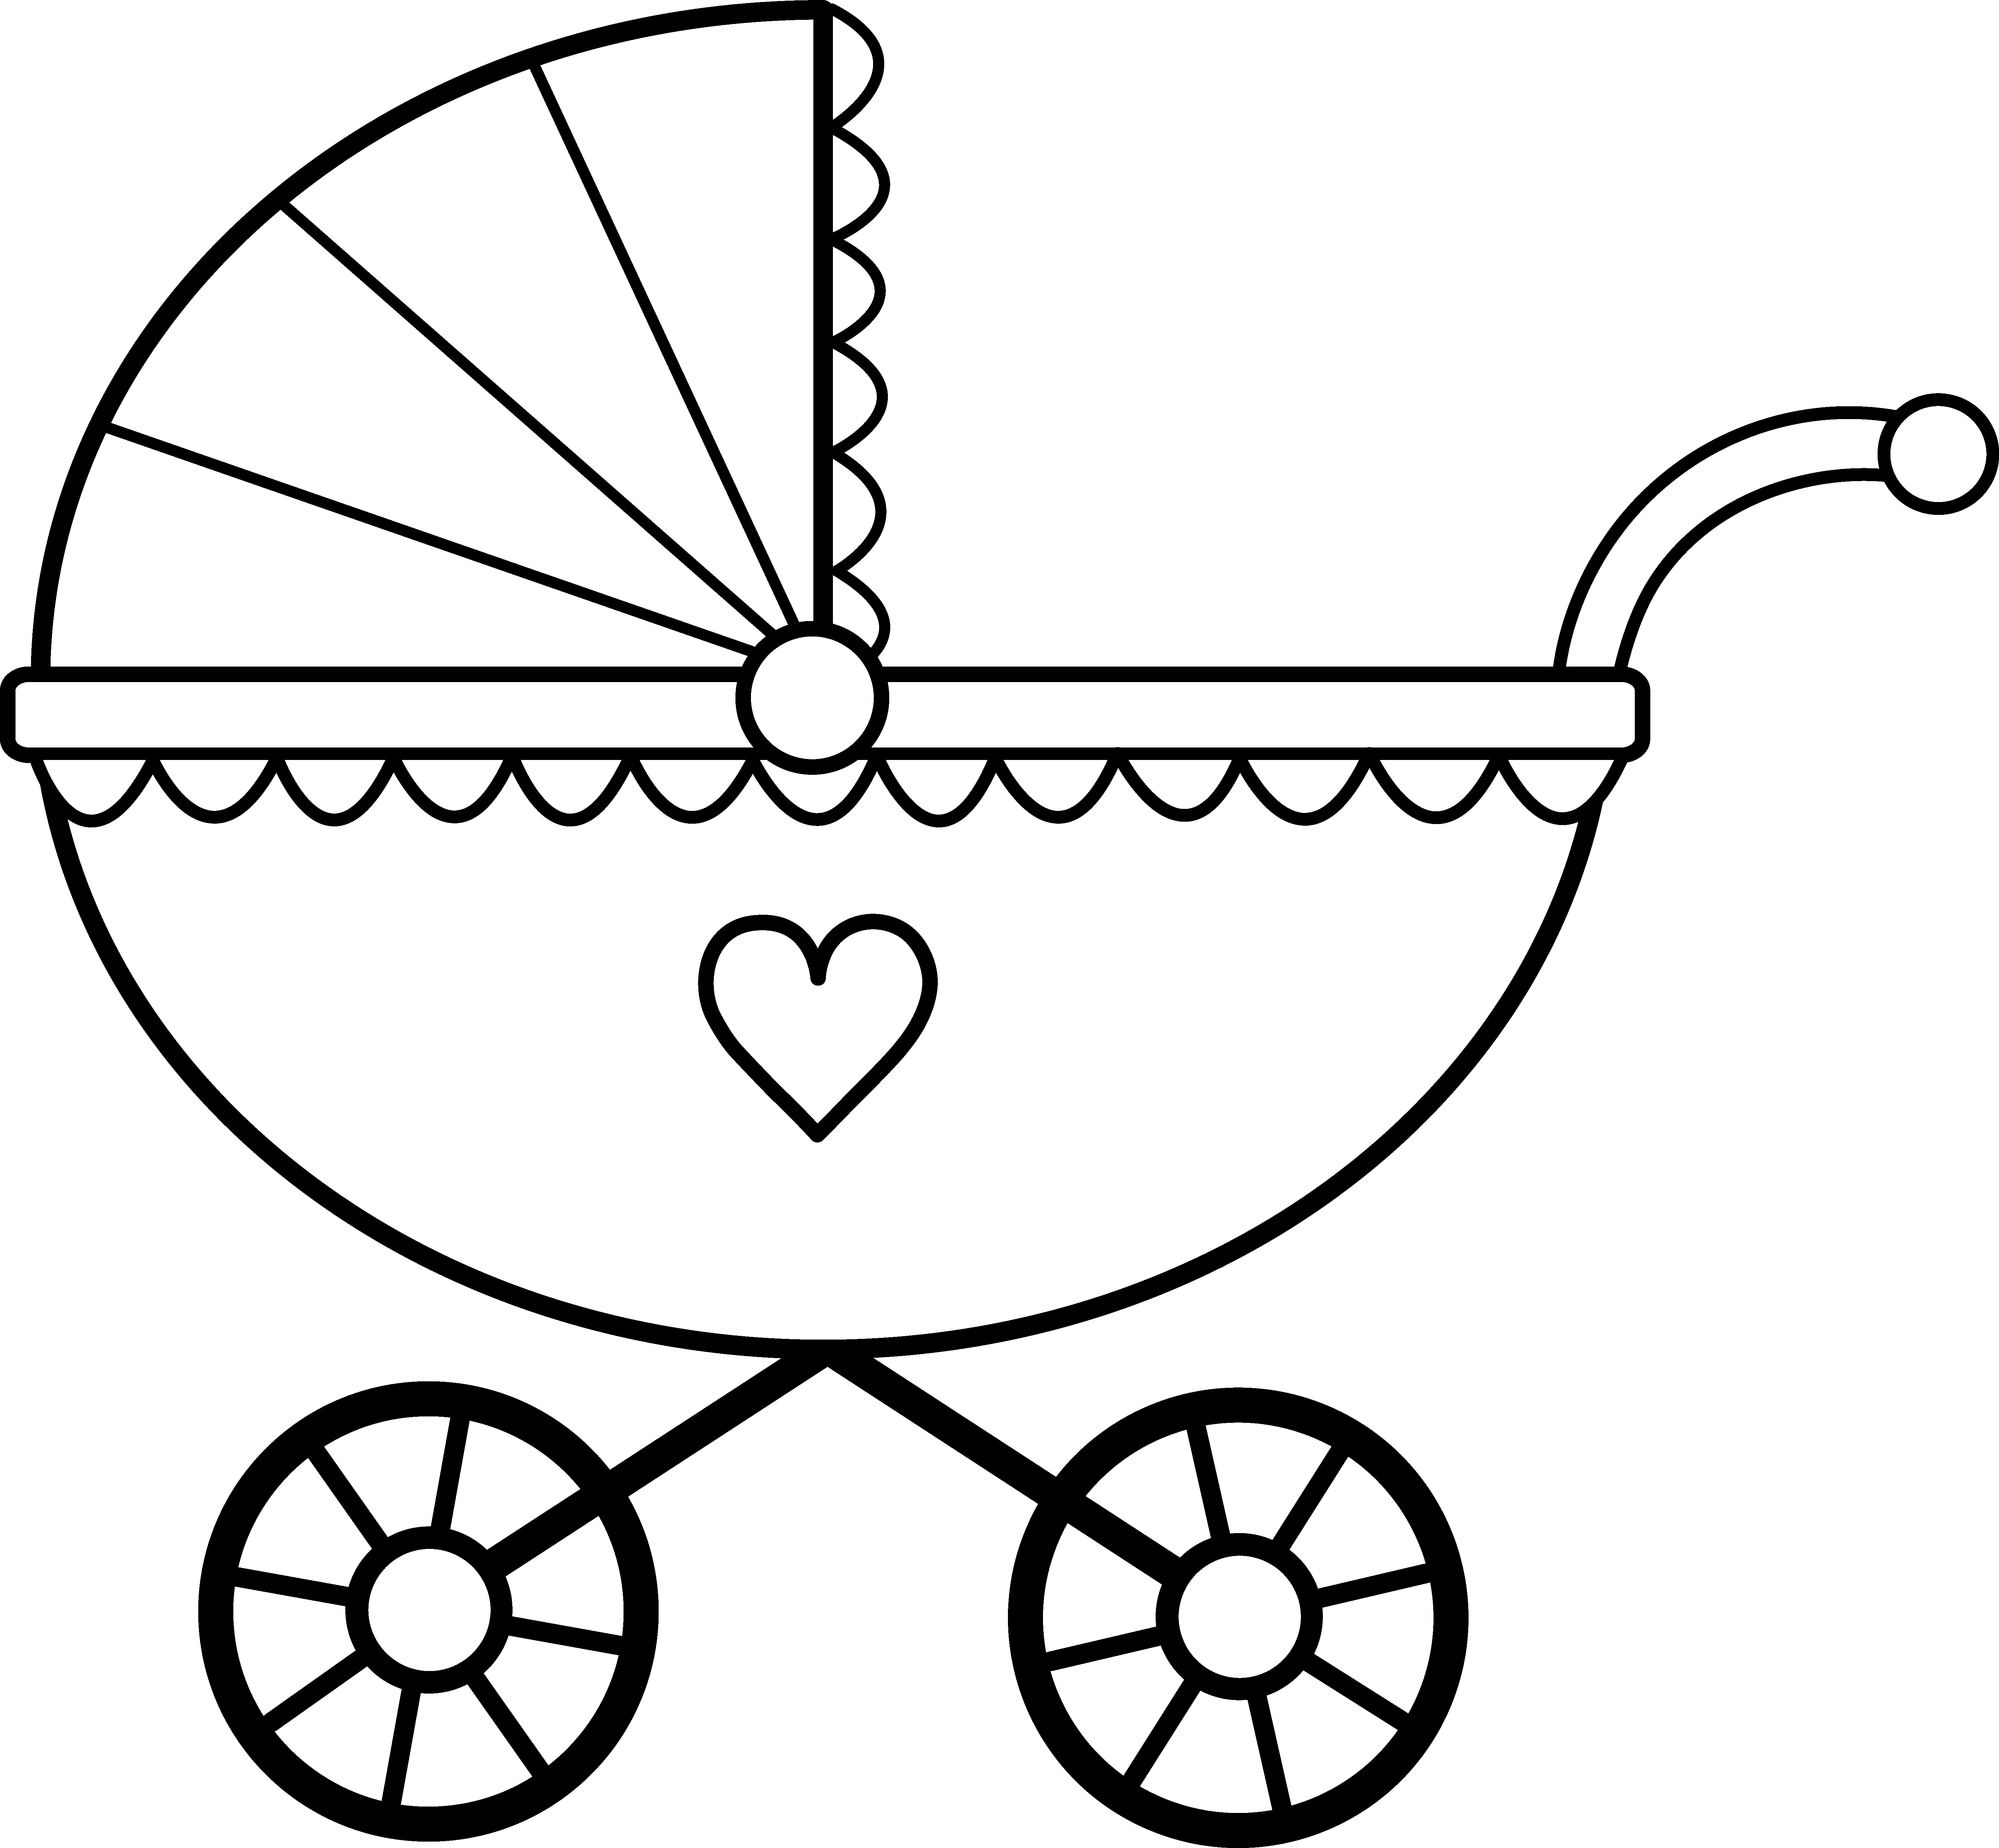 Cart drawing simple. Collection of baby